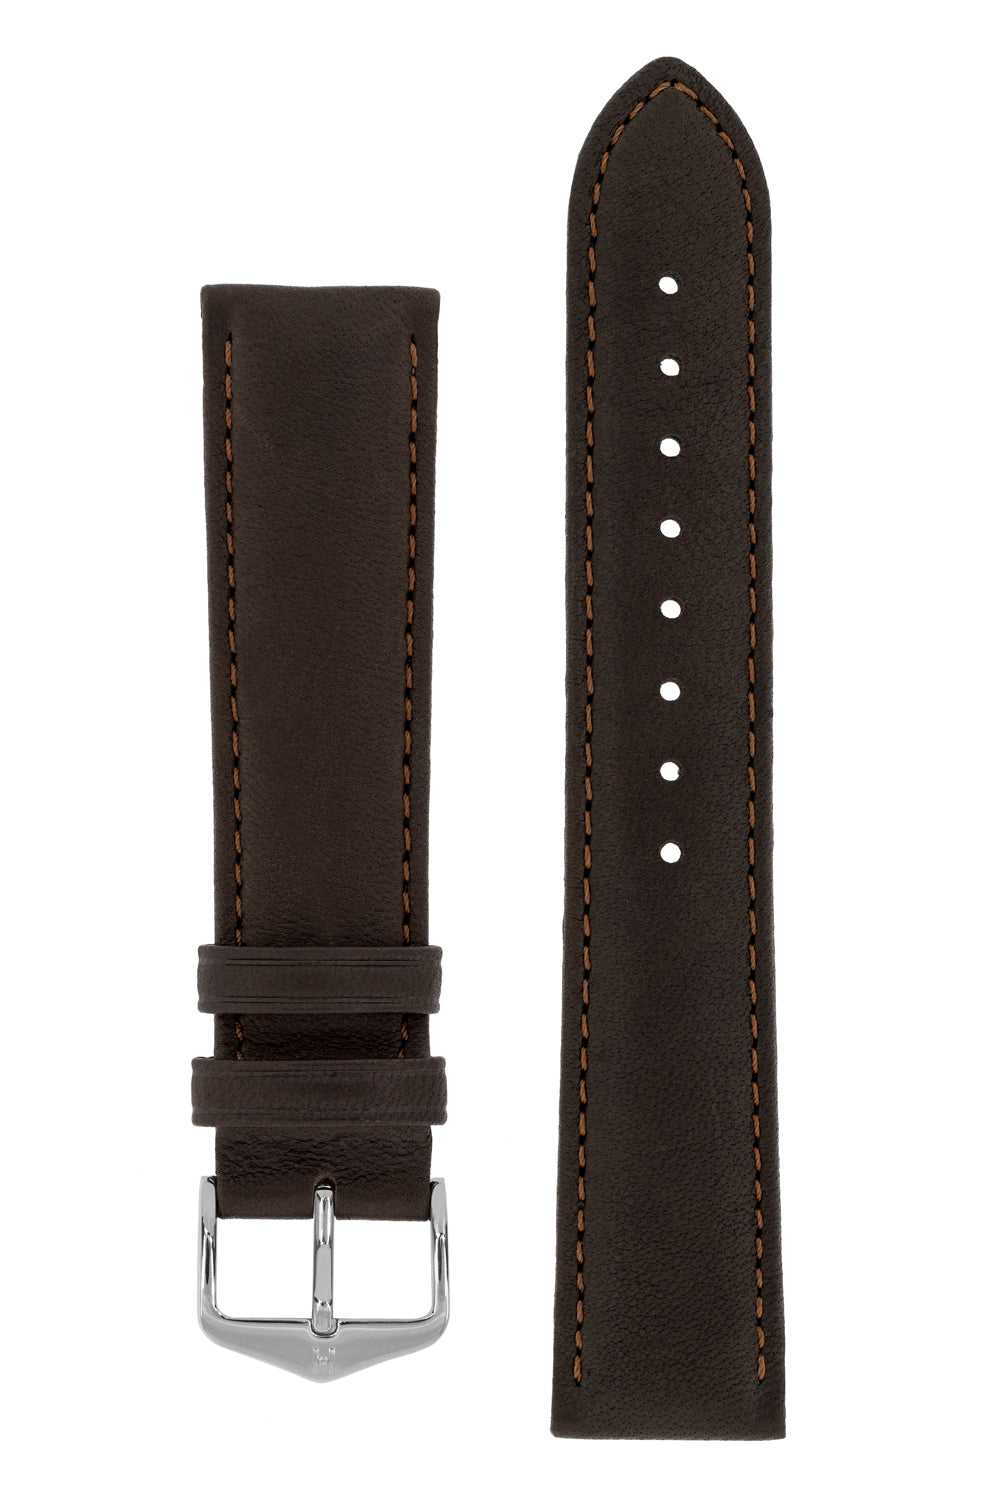 Hirsch MERINO Nappa Leather Watch Strap in BROWN